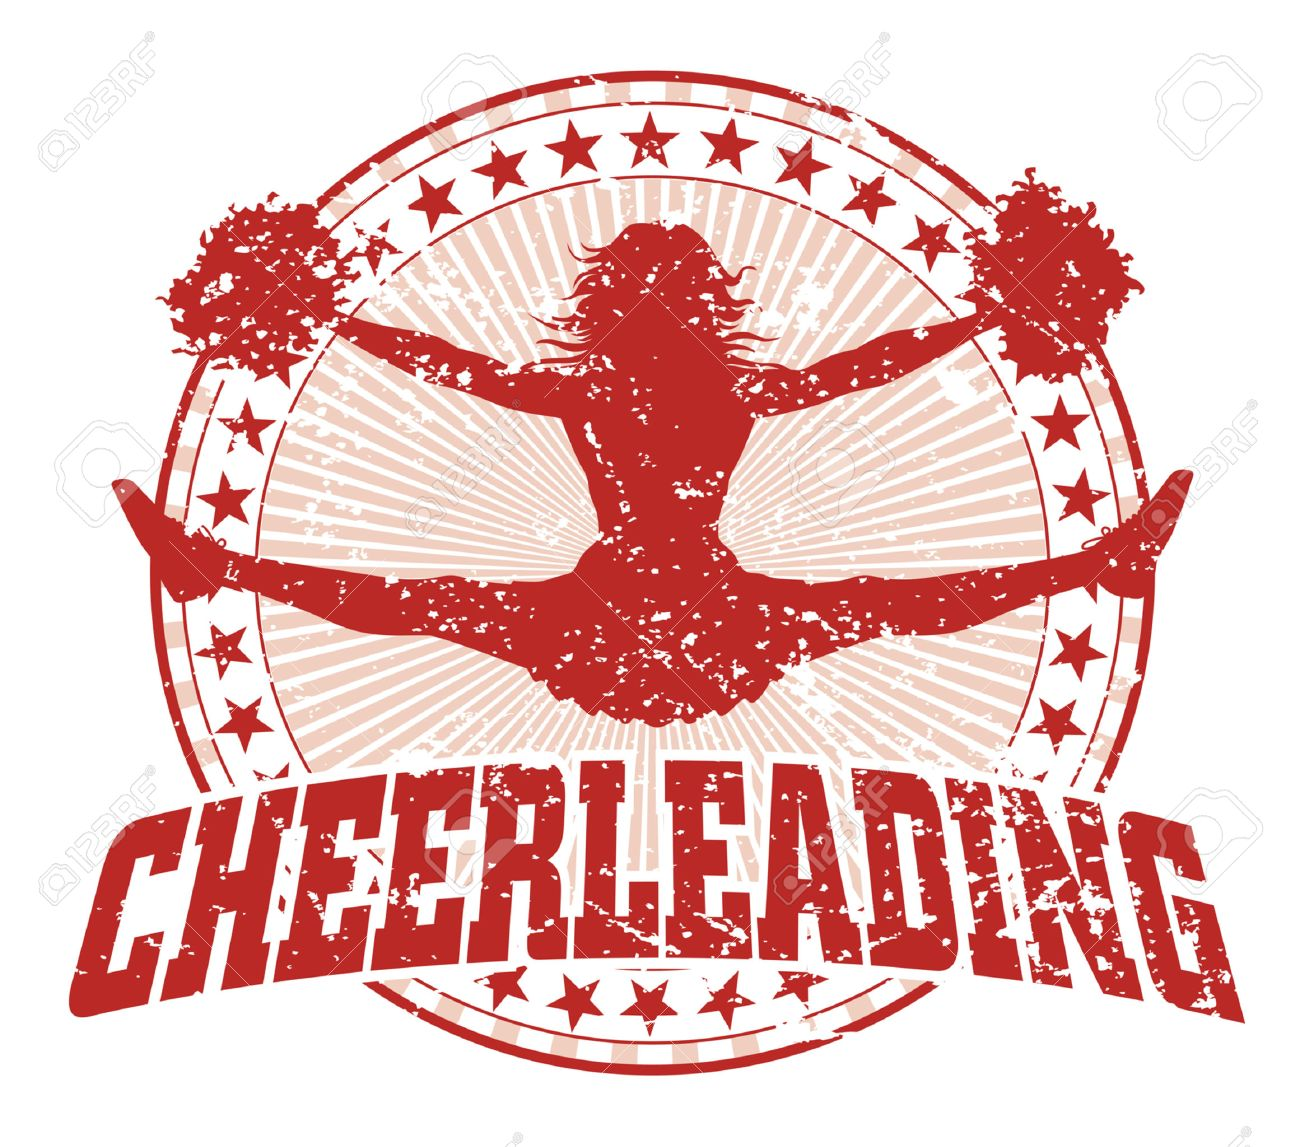 cheerleading Cheerleading Design - Vintage is an illustration of a cheerleading design in a vintage style with